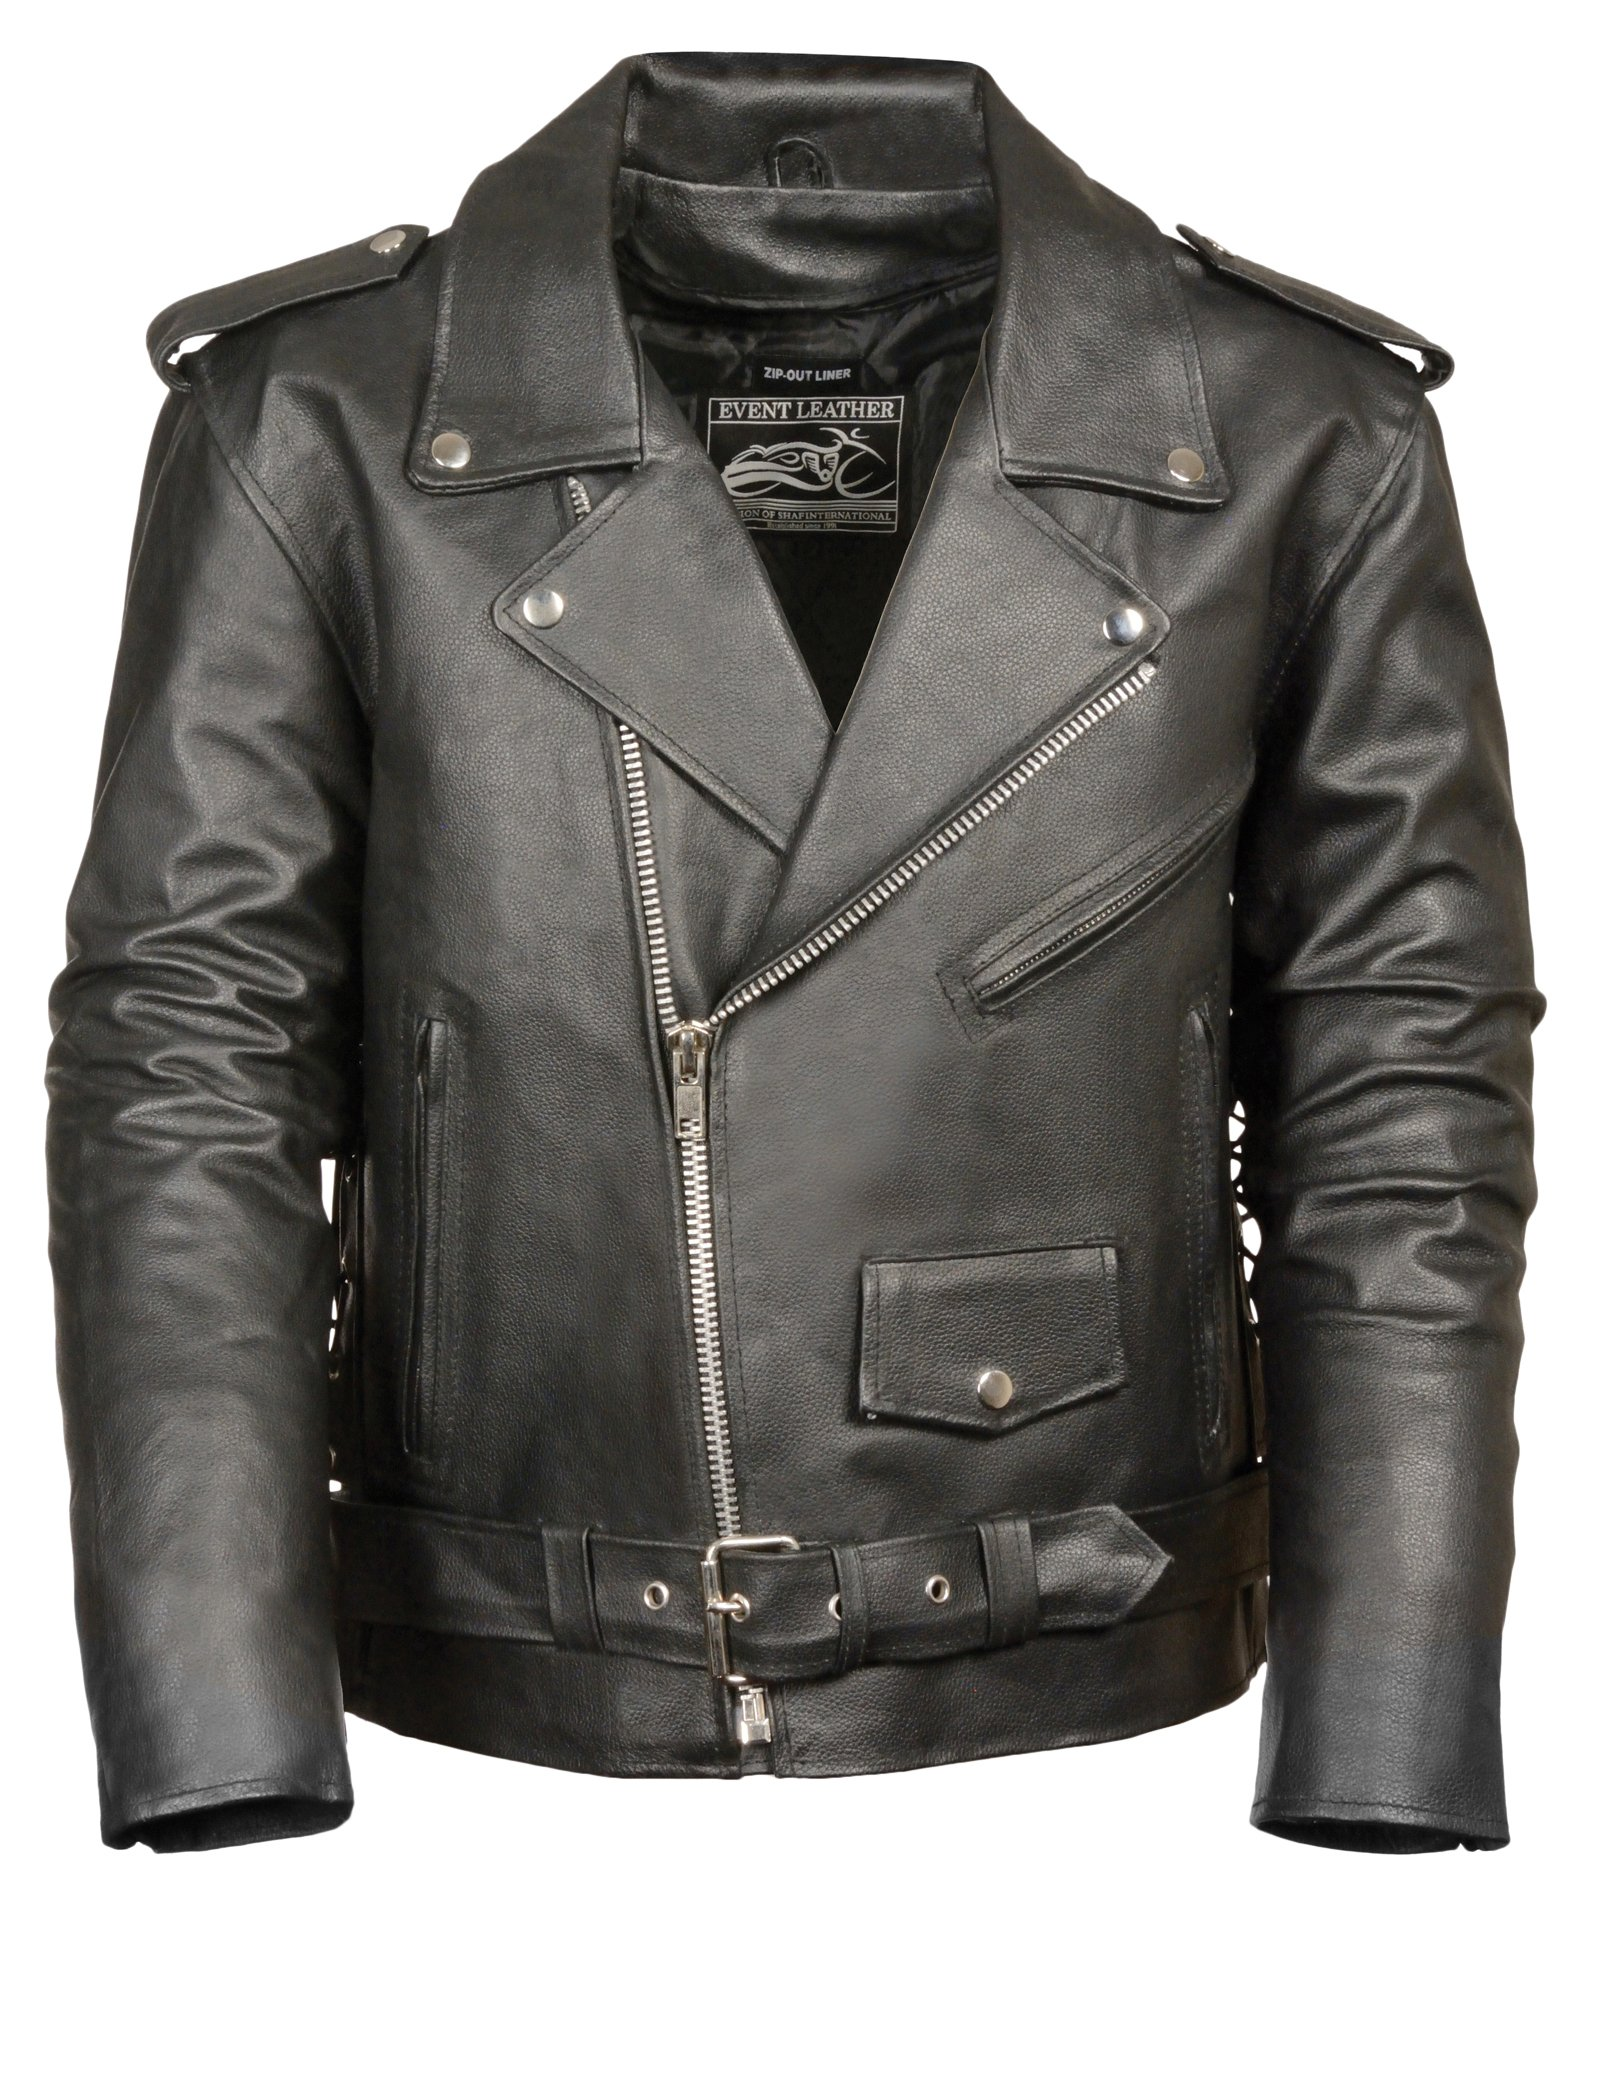 Event Biker Leather Men's Basic Motorcycle Jacket with Pockets (Black, Medium)